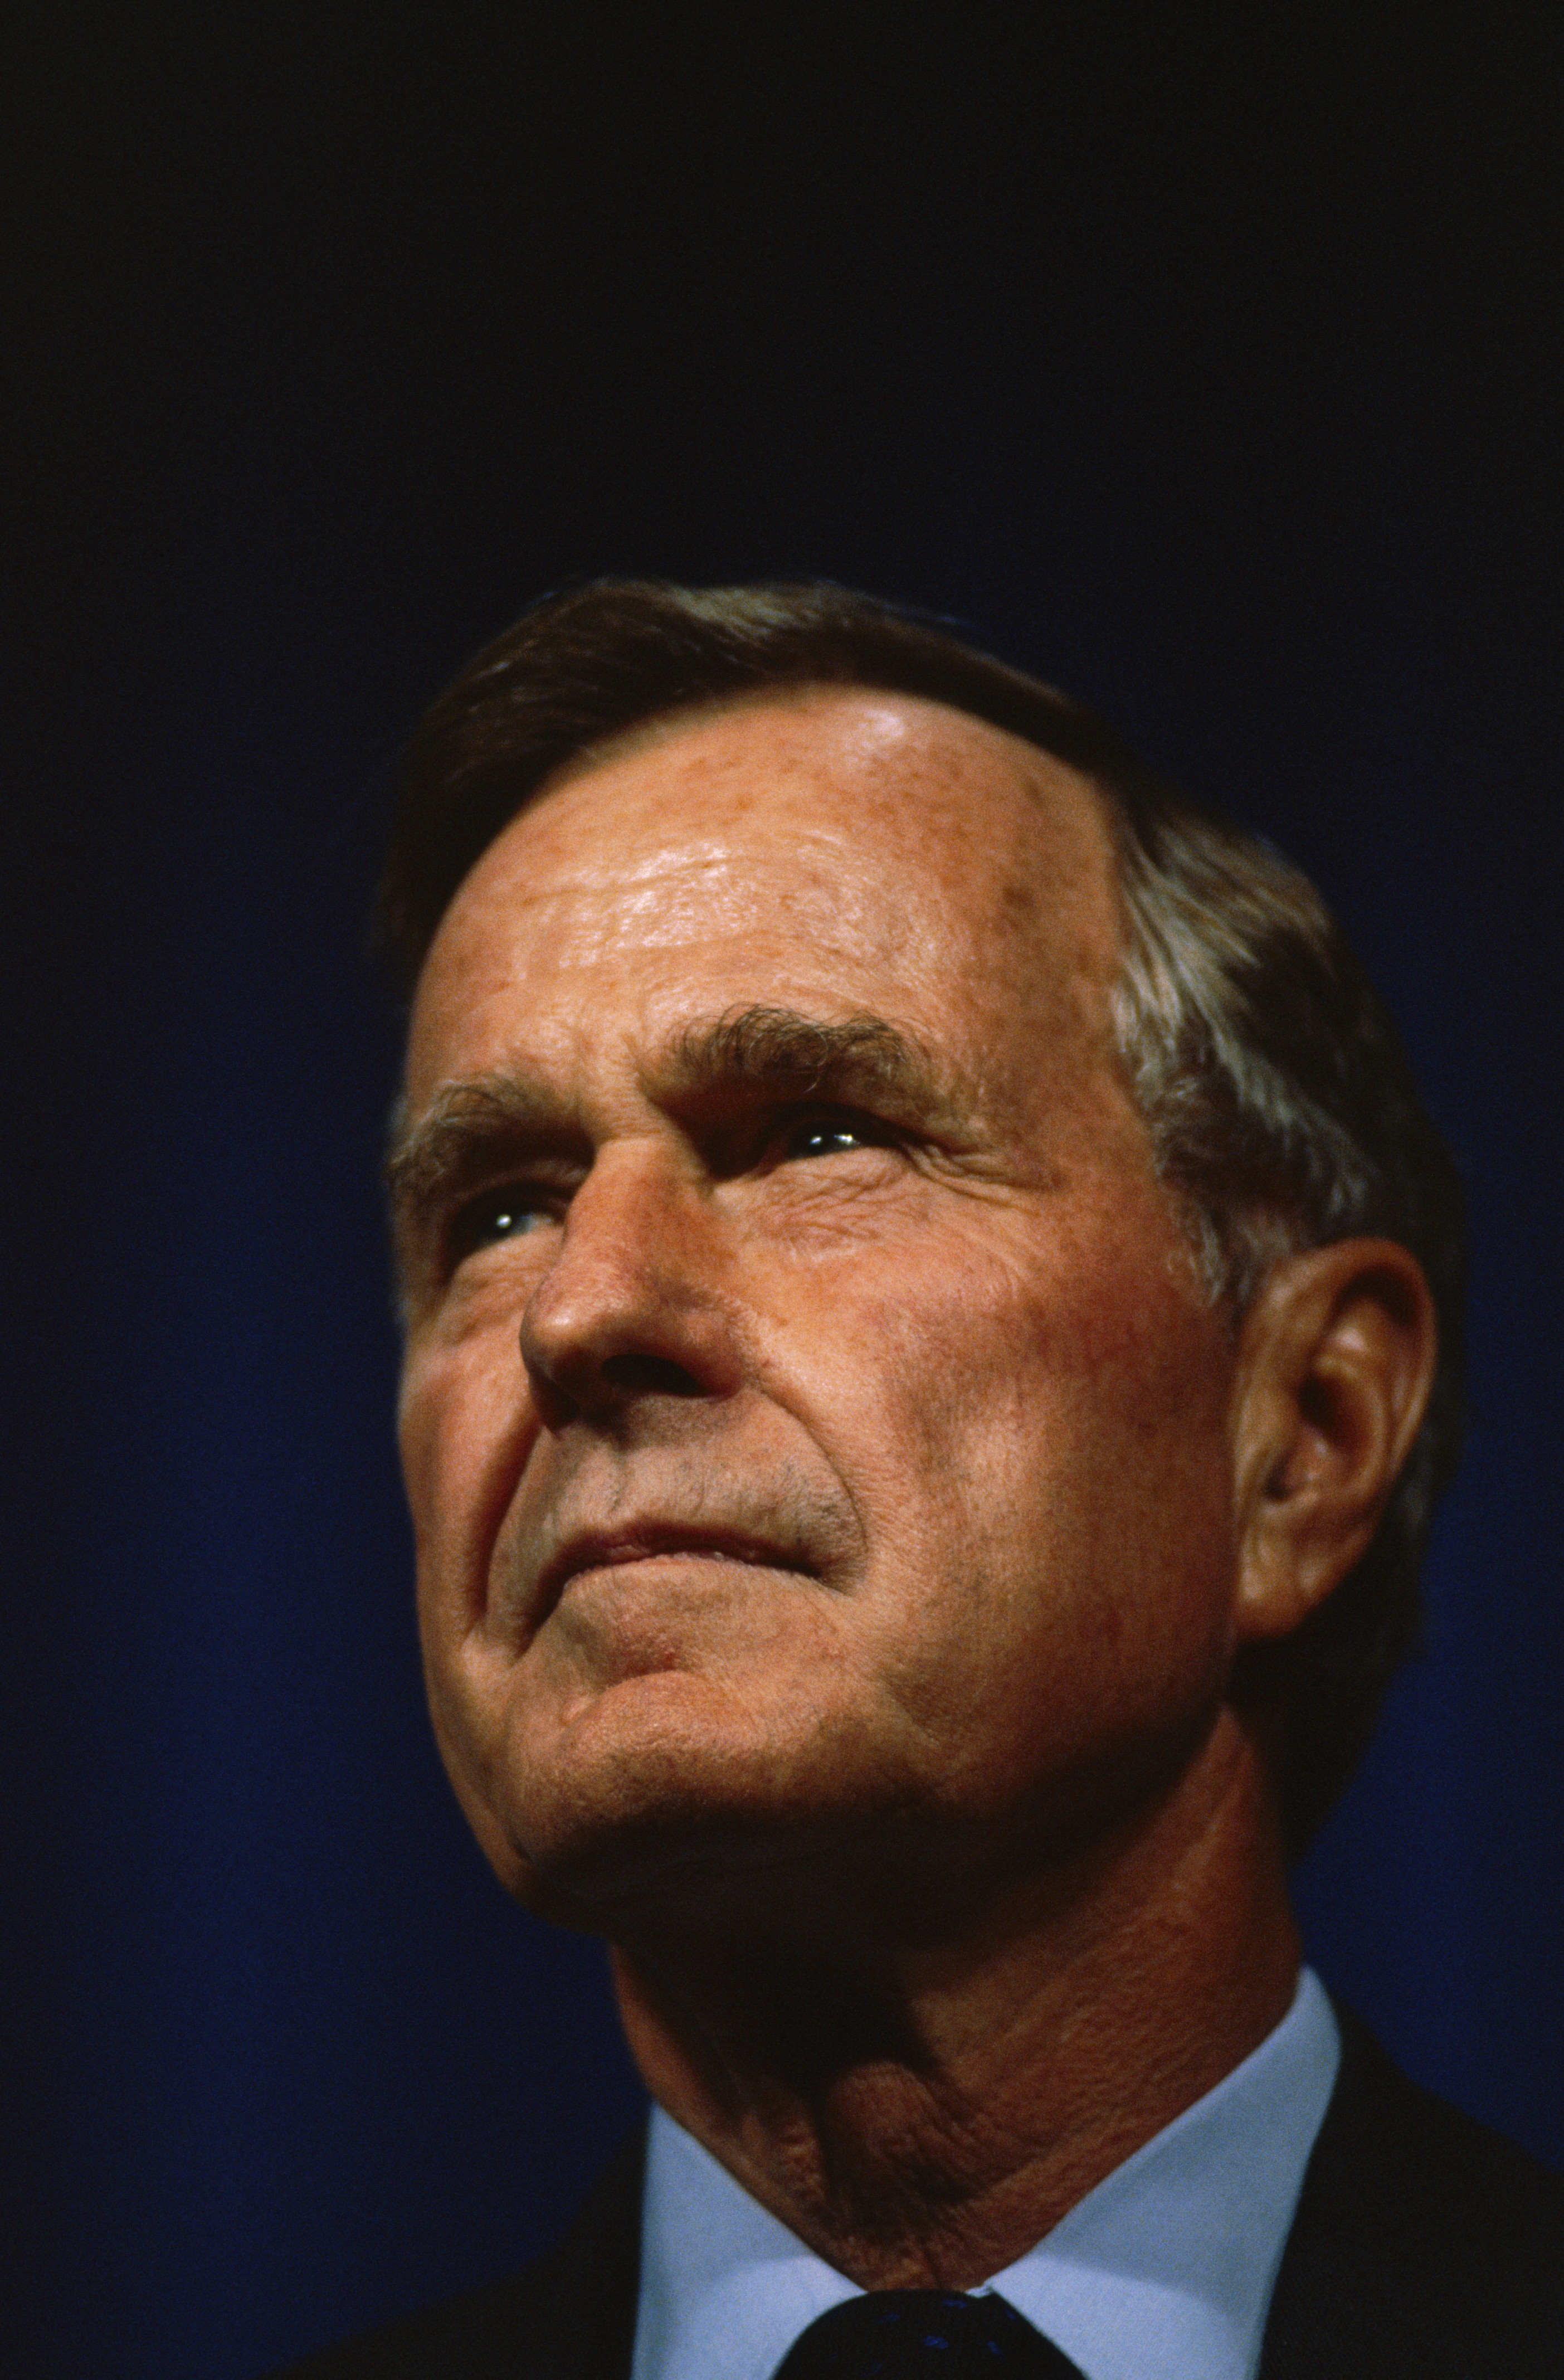 George H. W. Bush attends a dedication at the George R. Brown Convention Center in Houston on Oct. 1, 1993.